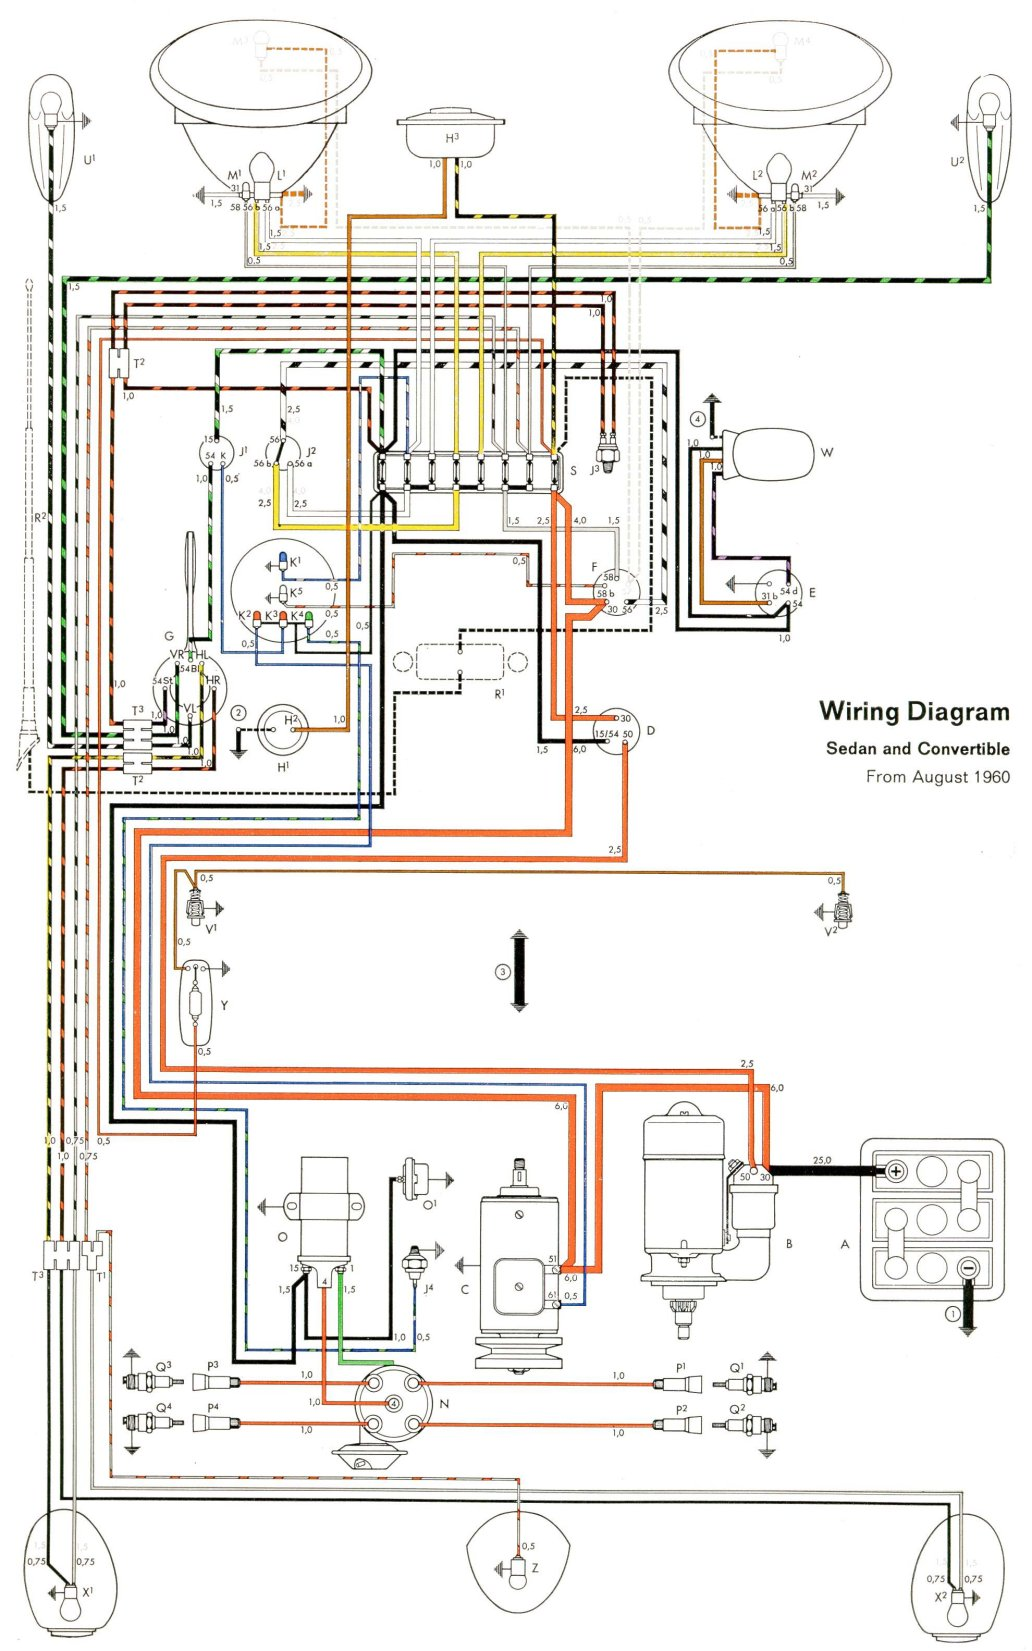 bug_61 thesamba com type 1 wiring diagrams vw beetle wiring diagram at bakdesigns.co